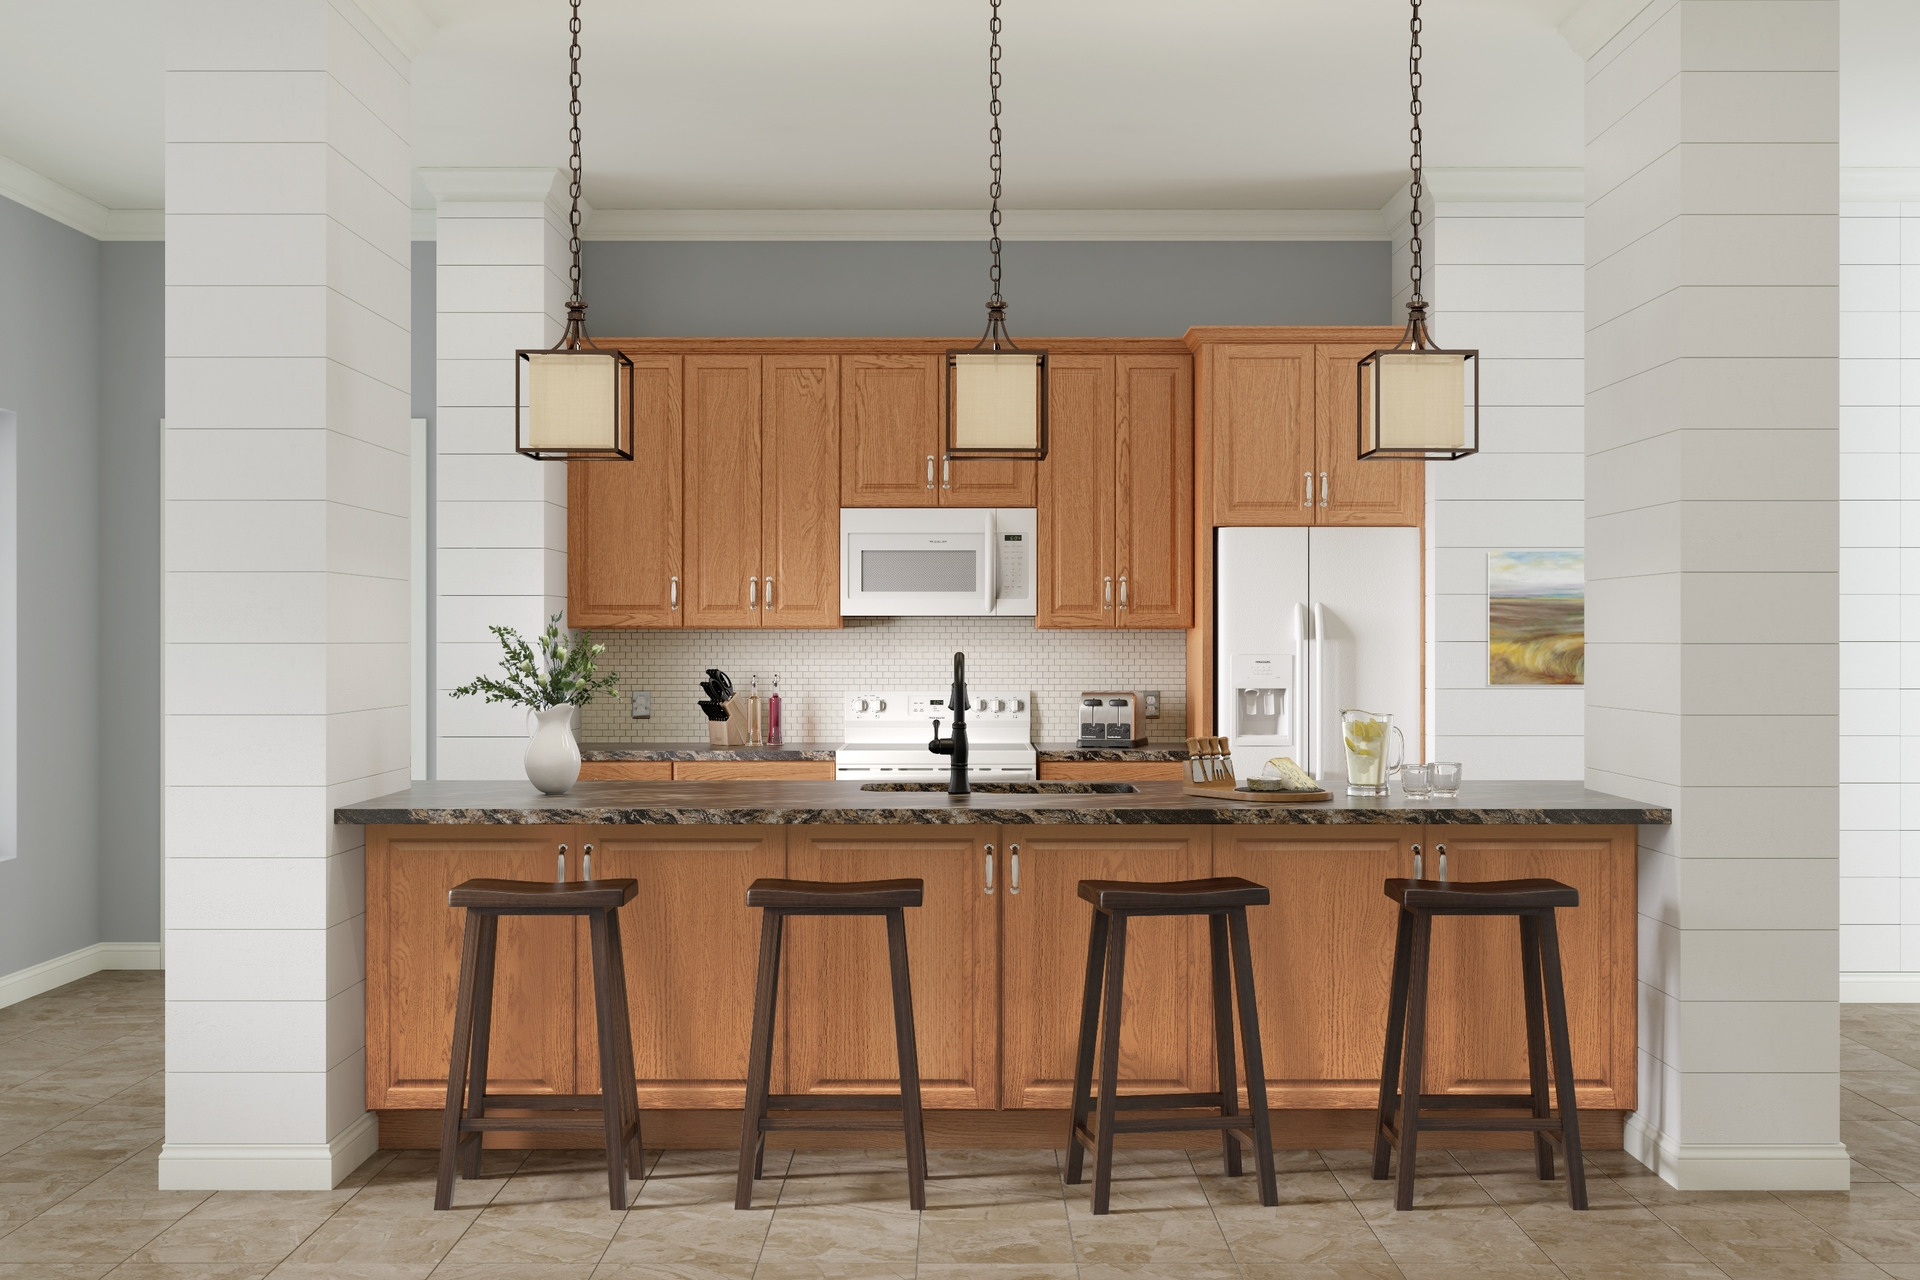 Cardell Cabinetry - Kitchen Cabinets - Forestville in Honey Spice